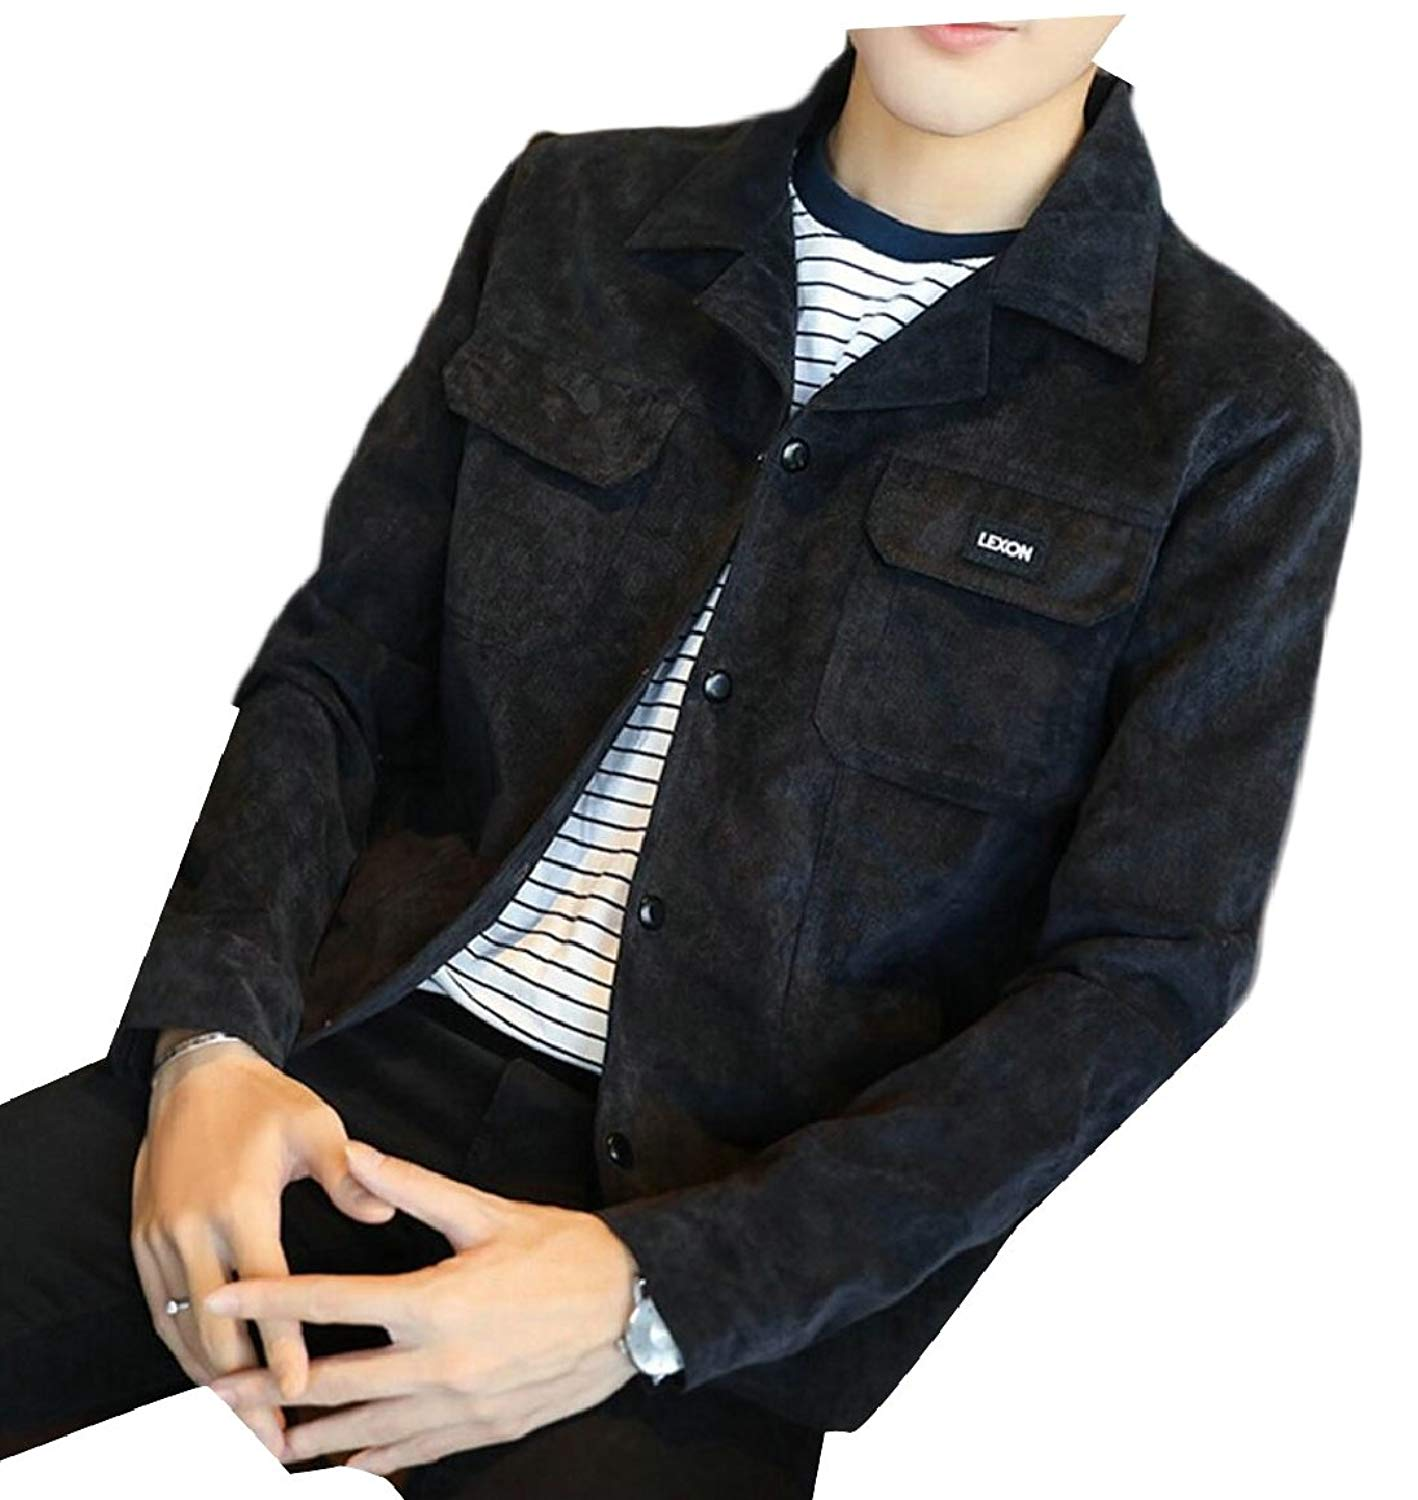 Smeiling Mens Fashion Thin Long Sleeve Jacket Lightweight Jacket Outweat